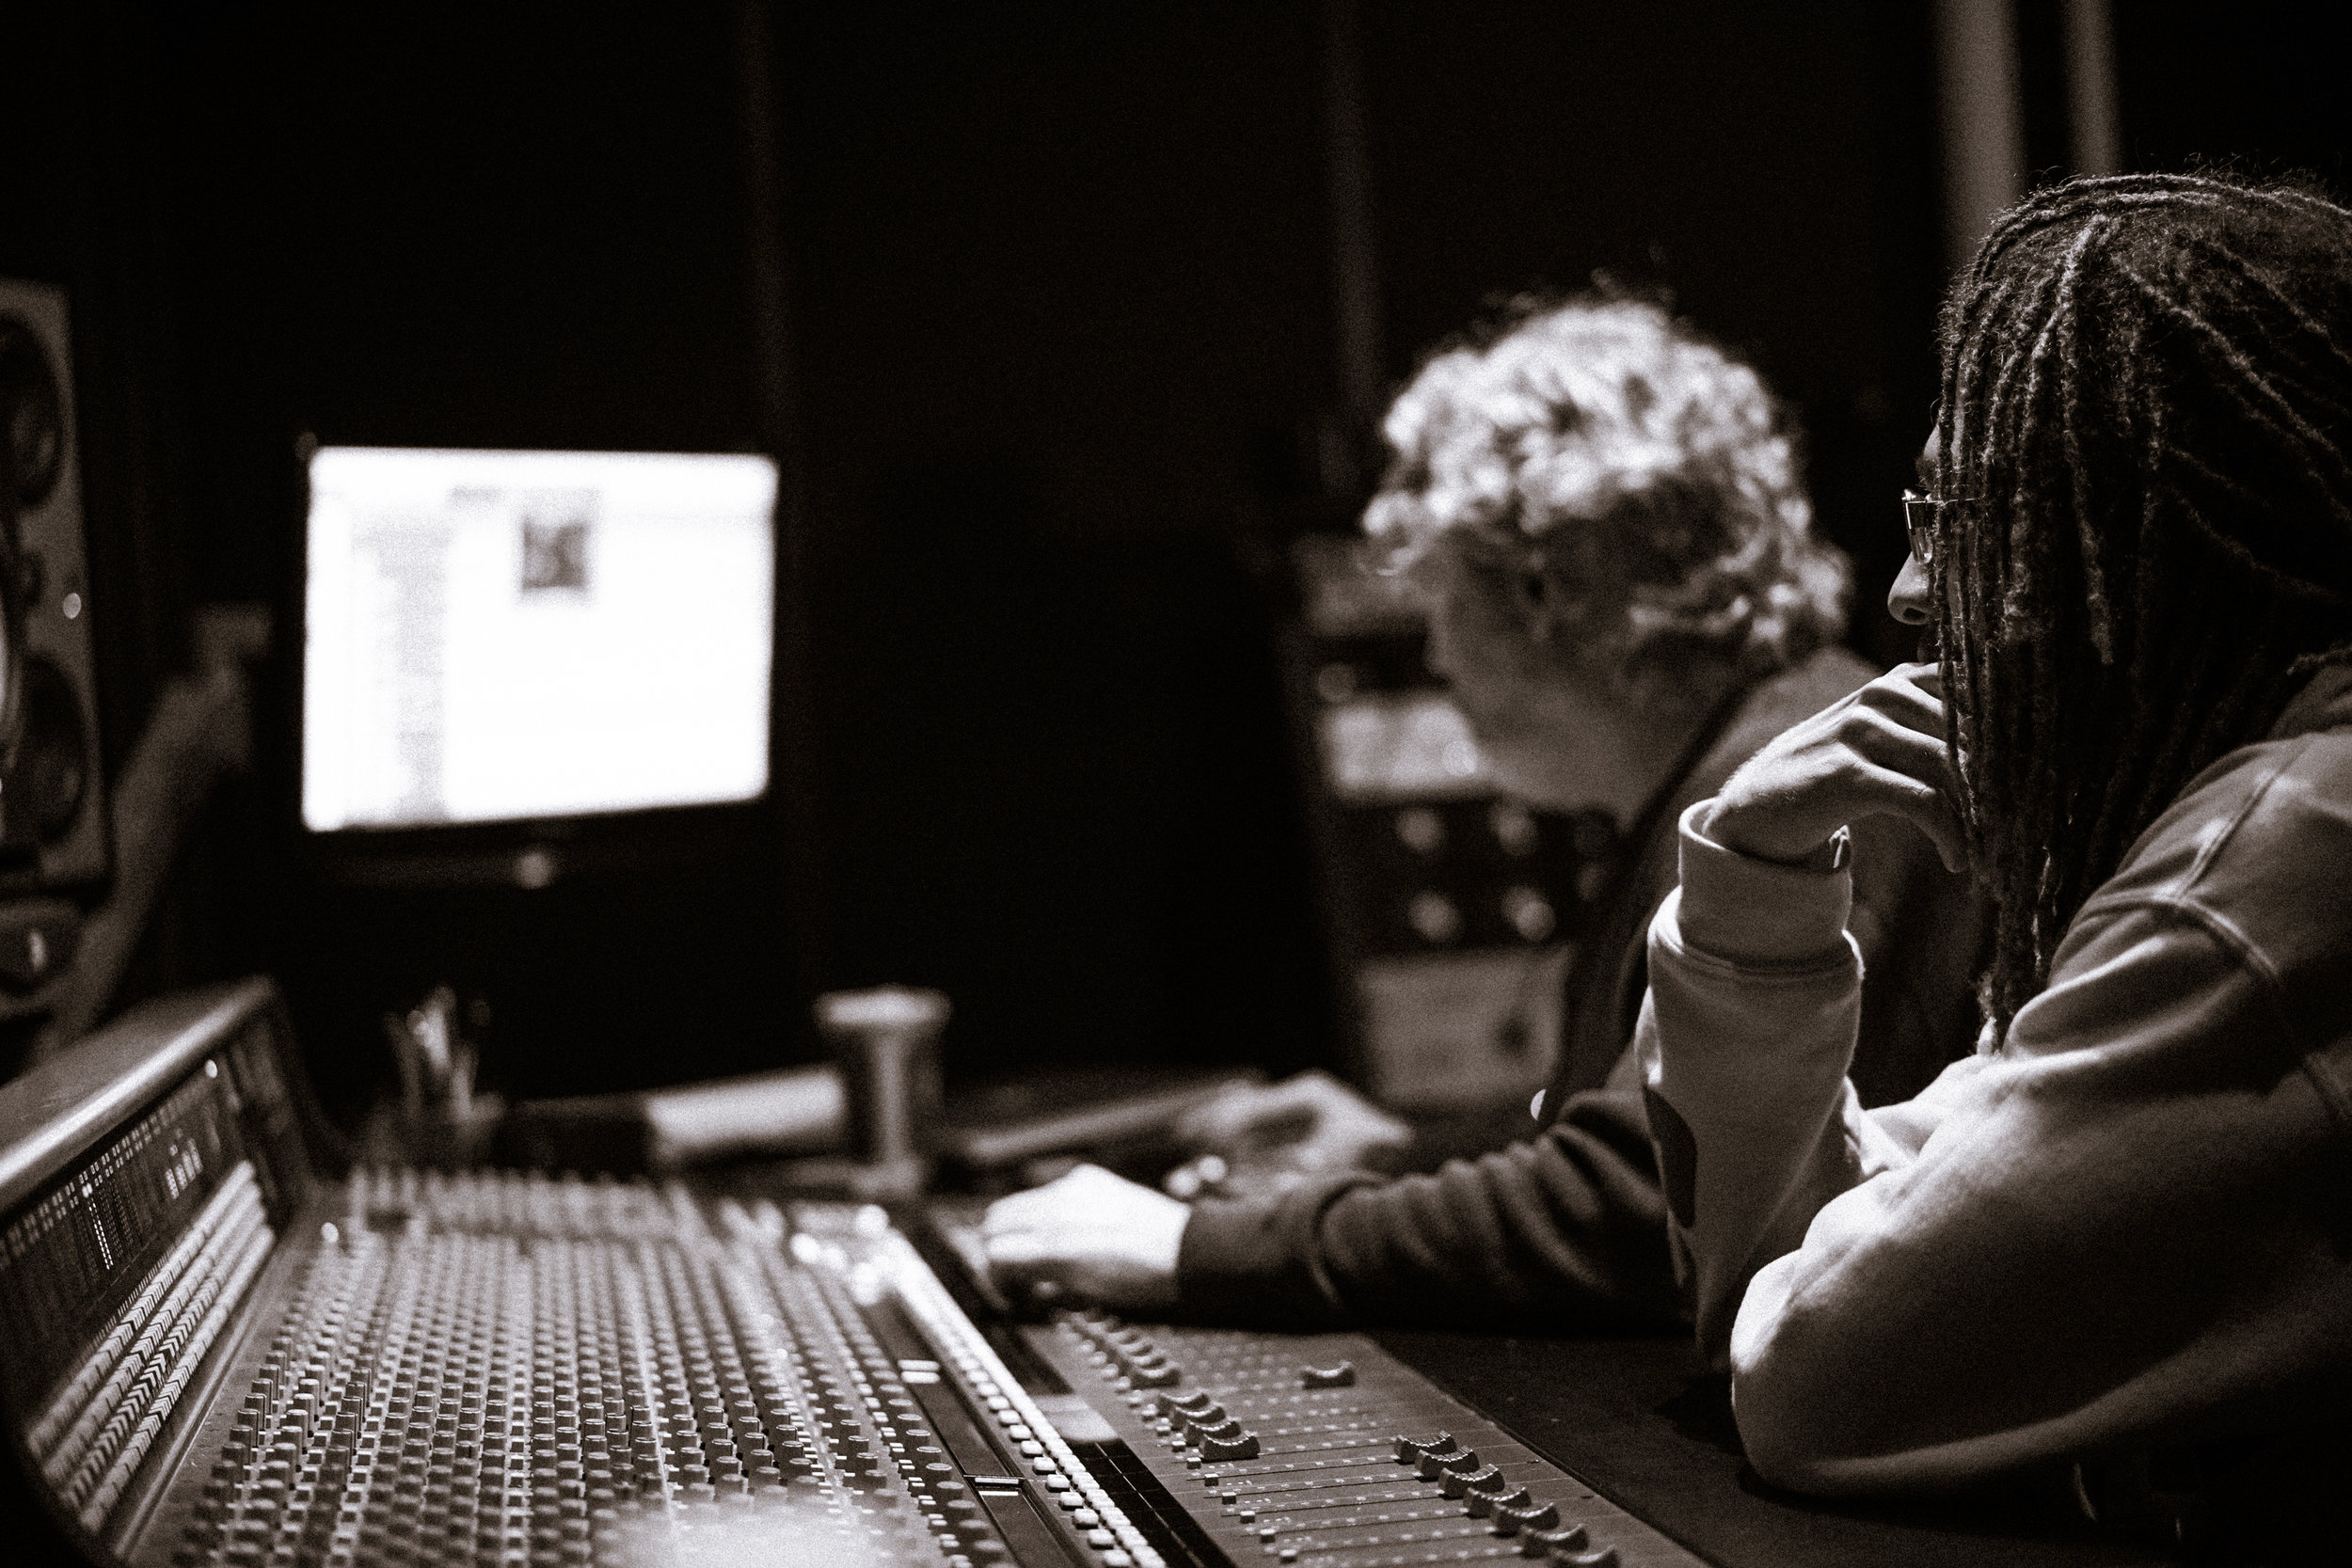 Mixing and Mastering - Quality Mixing and Mastering online services at affordable rates. Contact for further details.